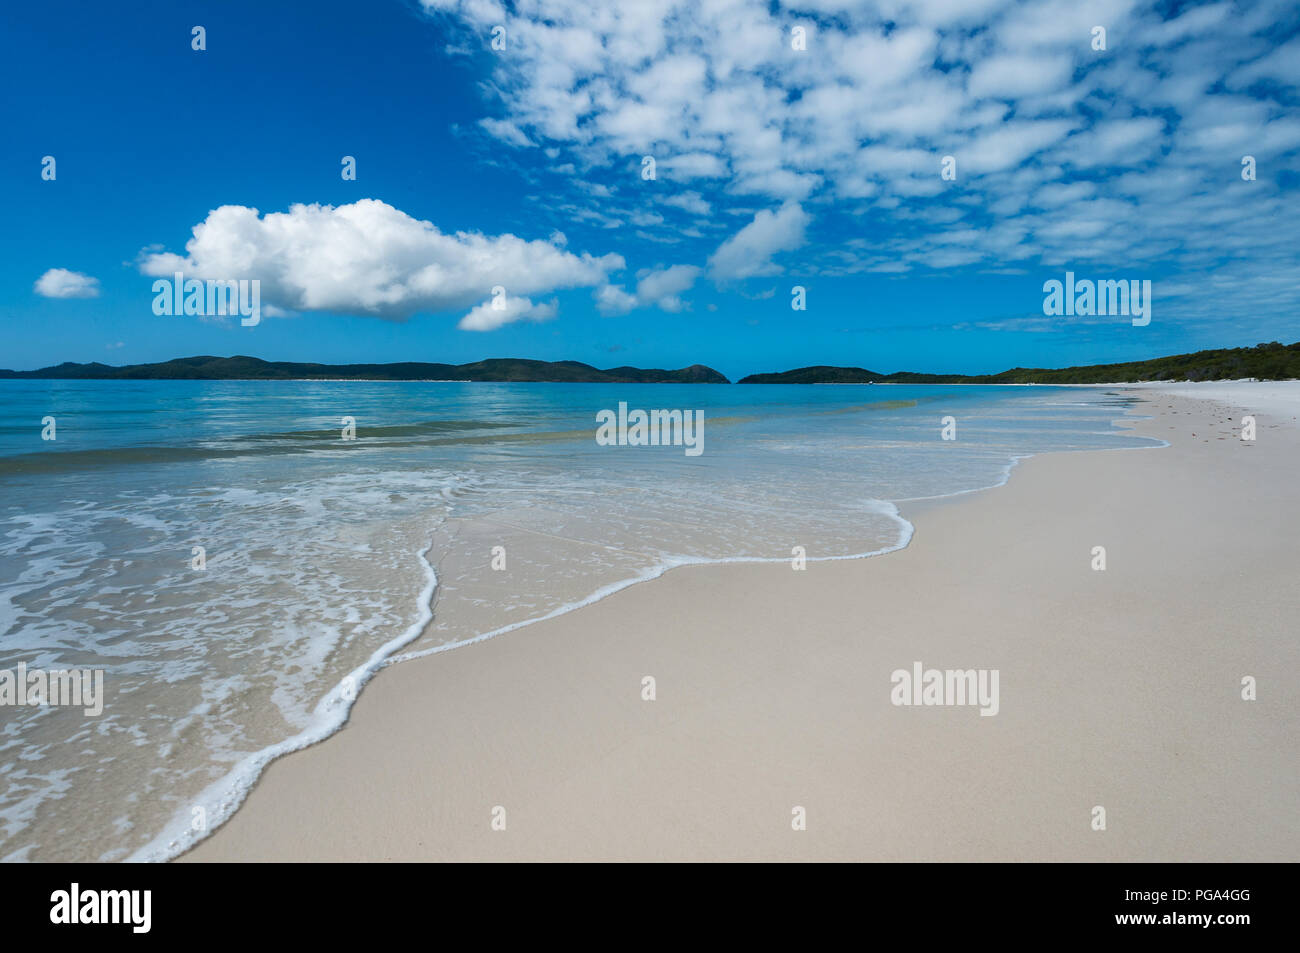 Whitehaven Beach is one of the most splendid beaches in the world. - Stock Image